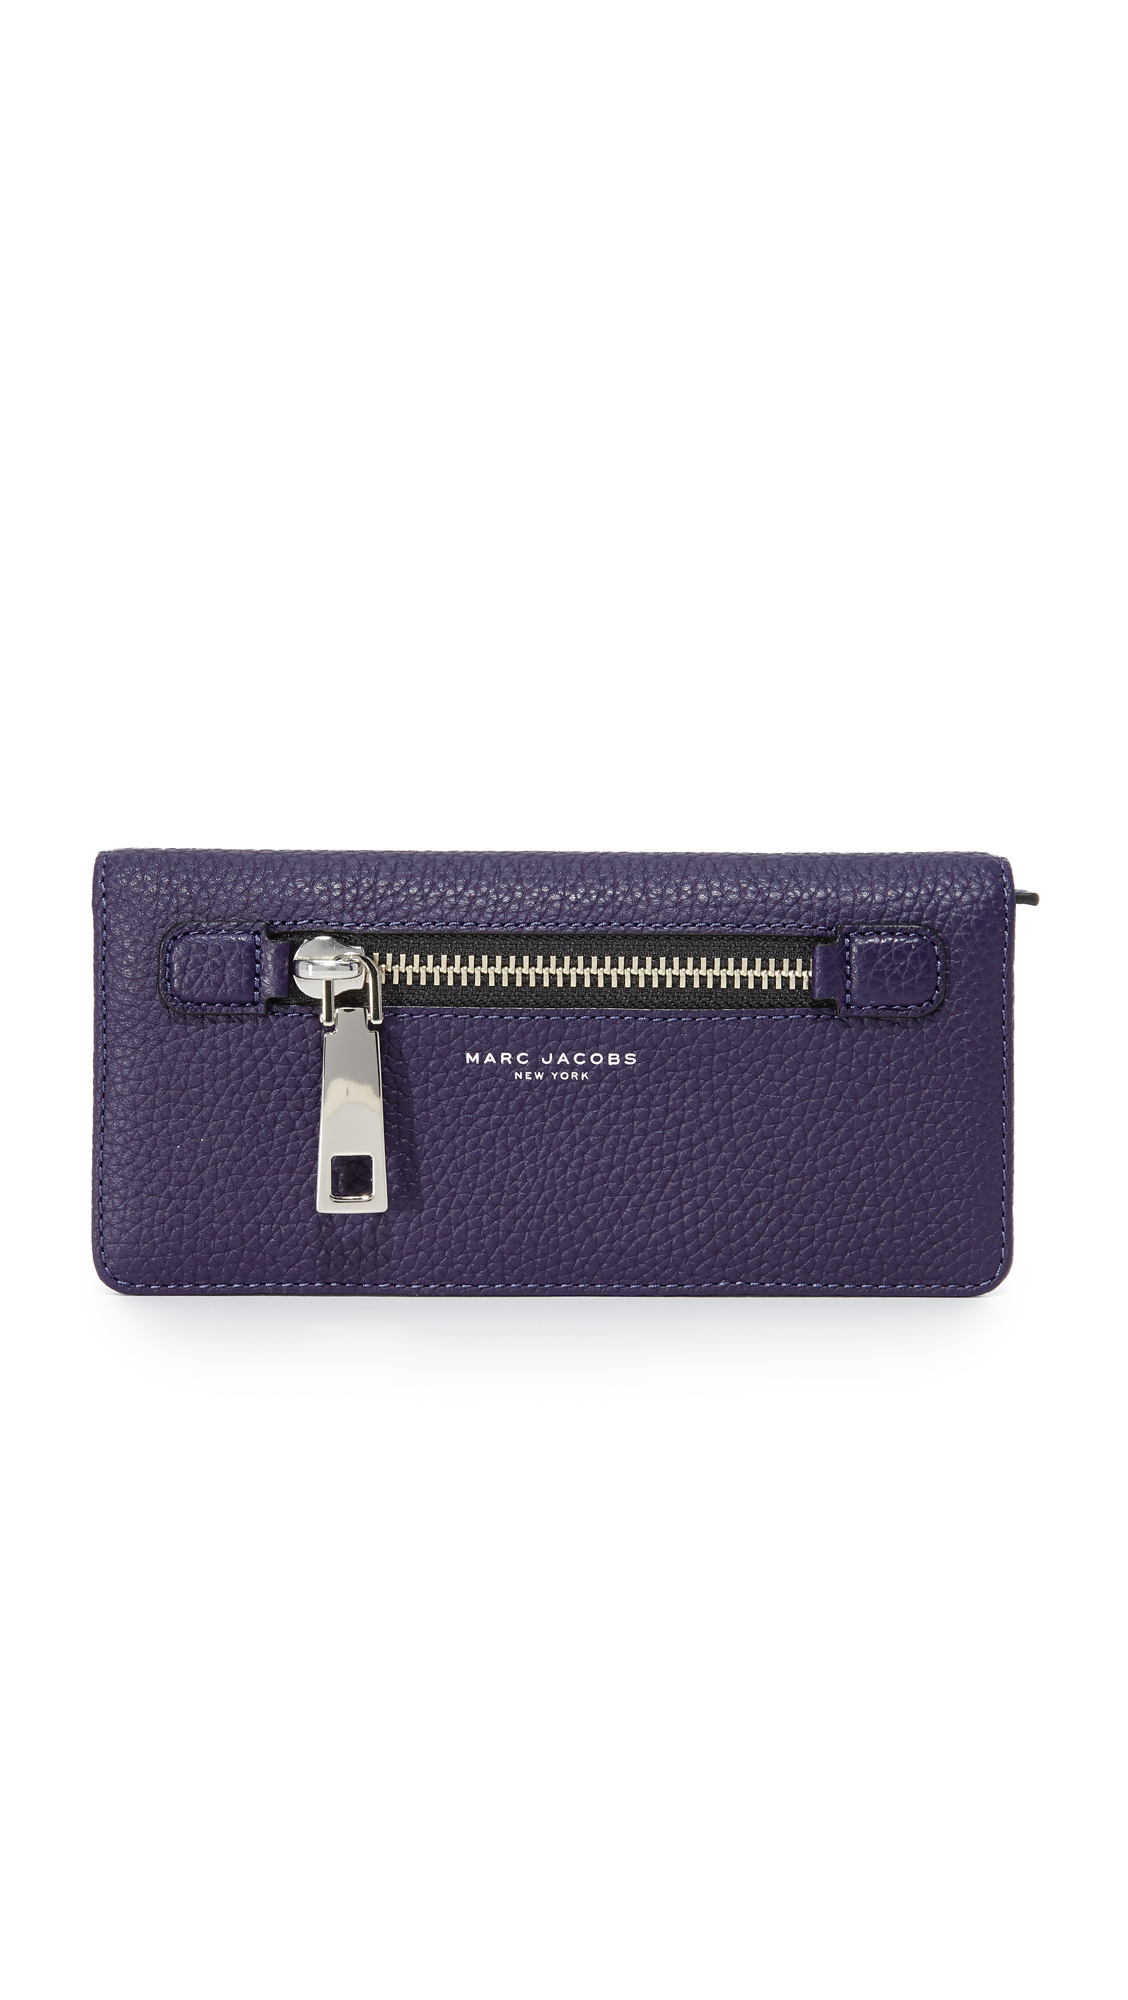 marc jacobs female marc jacobs gotham open face wallet nightshade